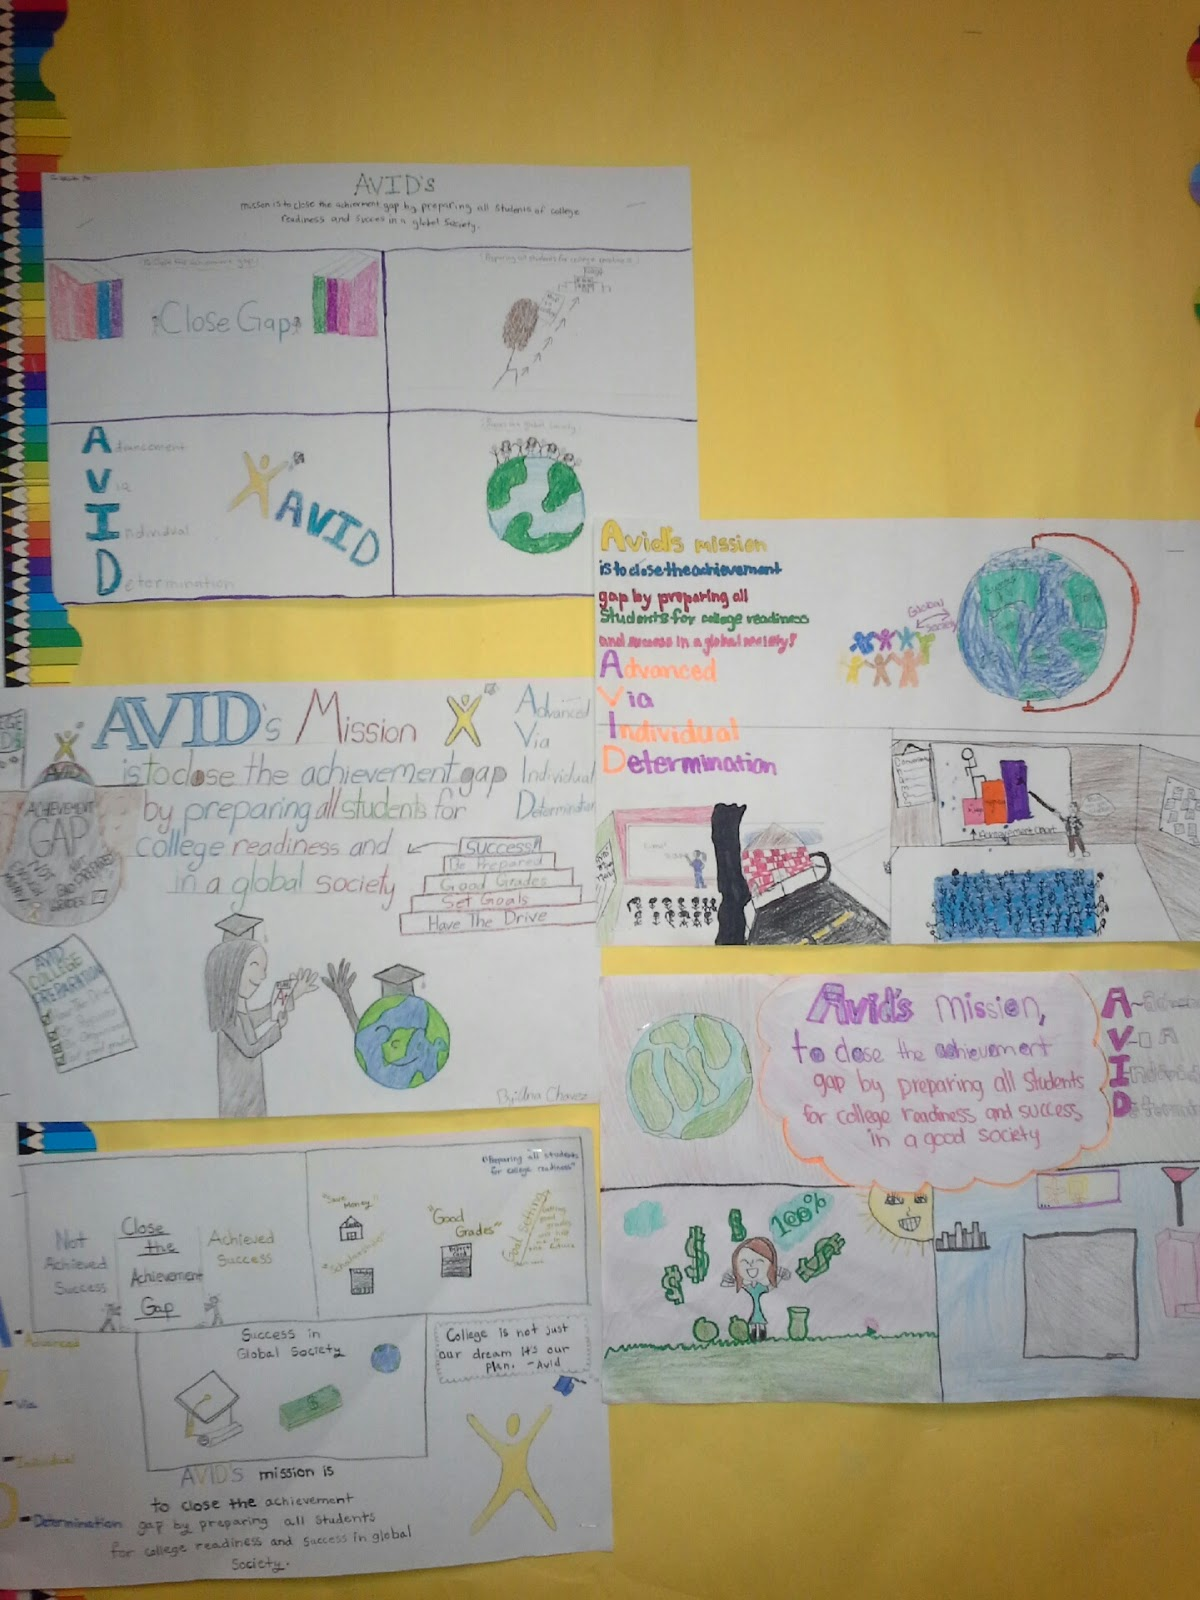 avids mission is to close the achievement gap by preparing all students for college readiness and success in a global society